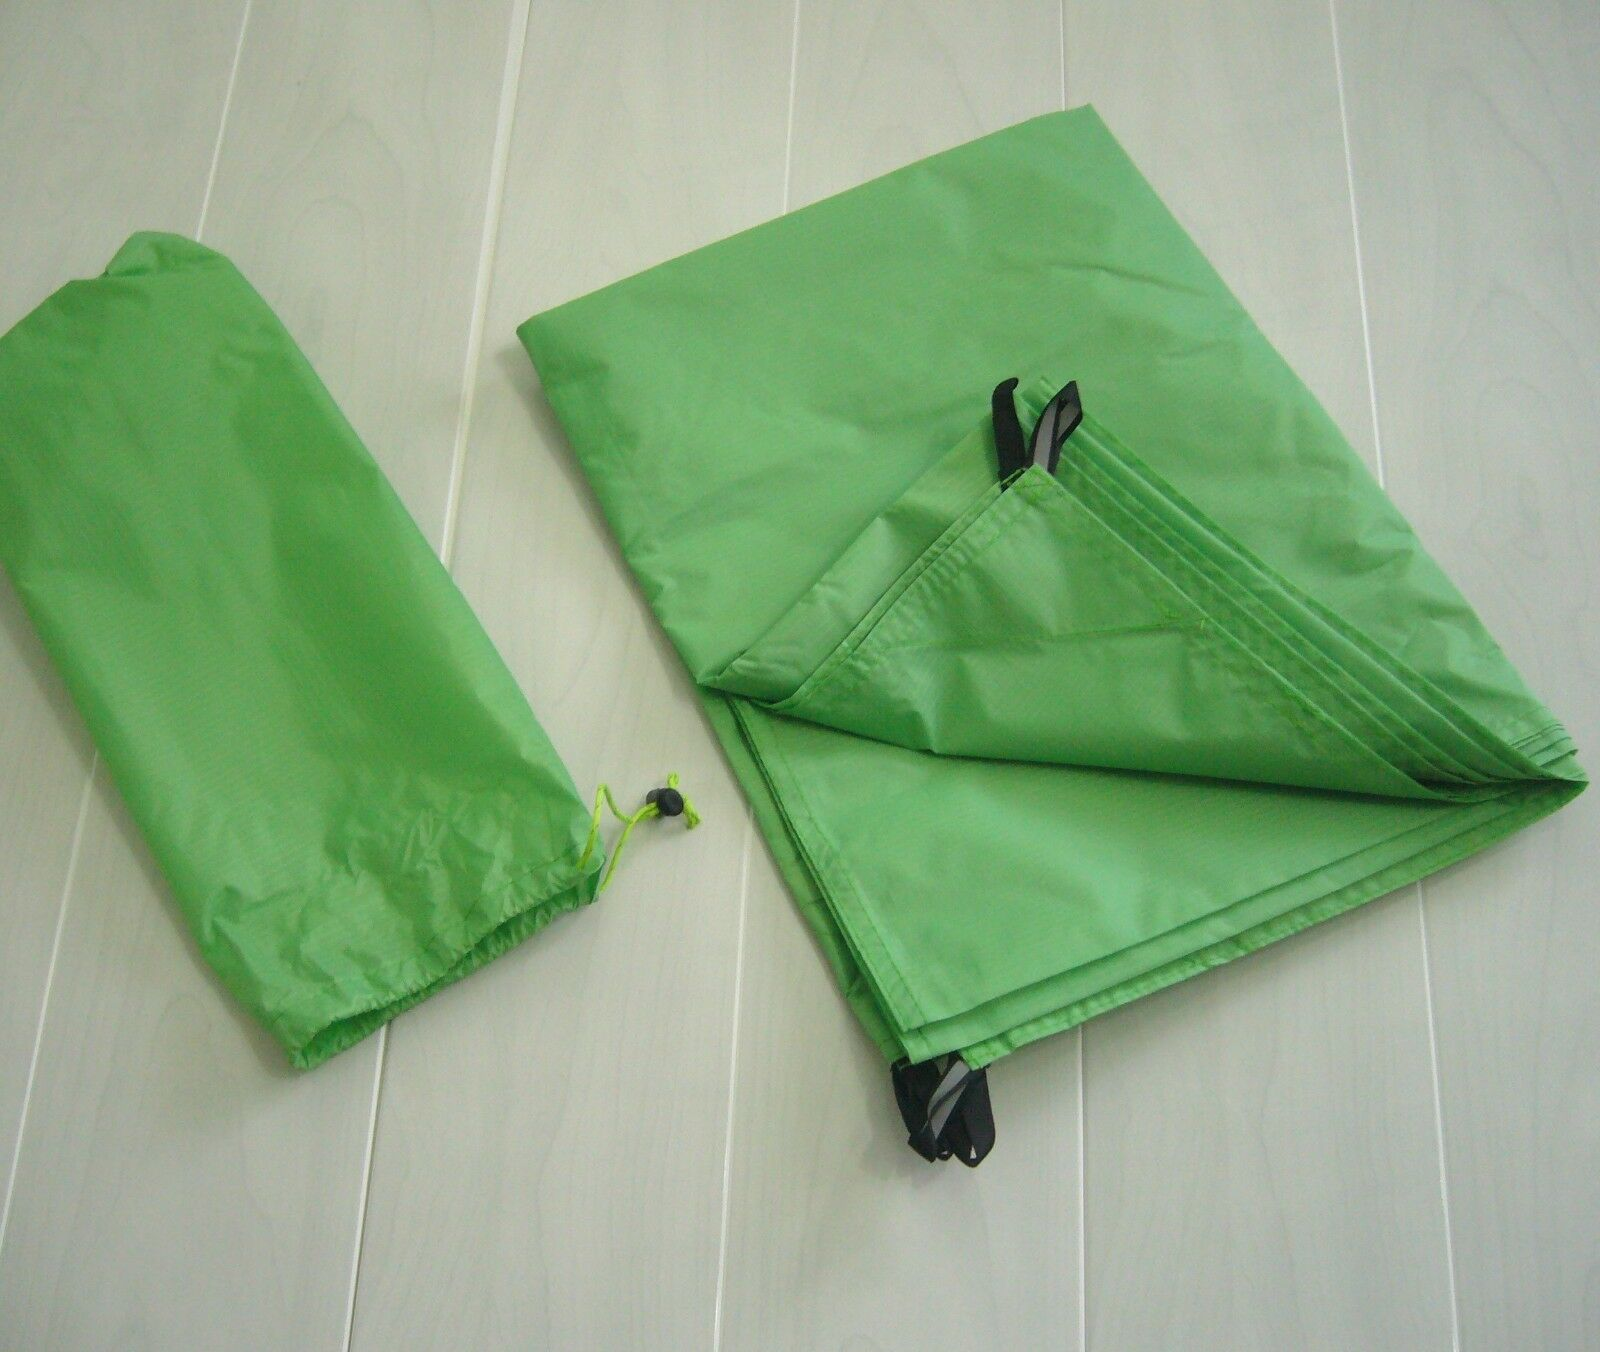 2 on Groundsheet-Camping/Backpacking Tent Groundsheet-Camping/Backpacking on 210 cm x 140 cm 246 G, HSH 6000 mm 184edc